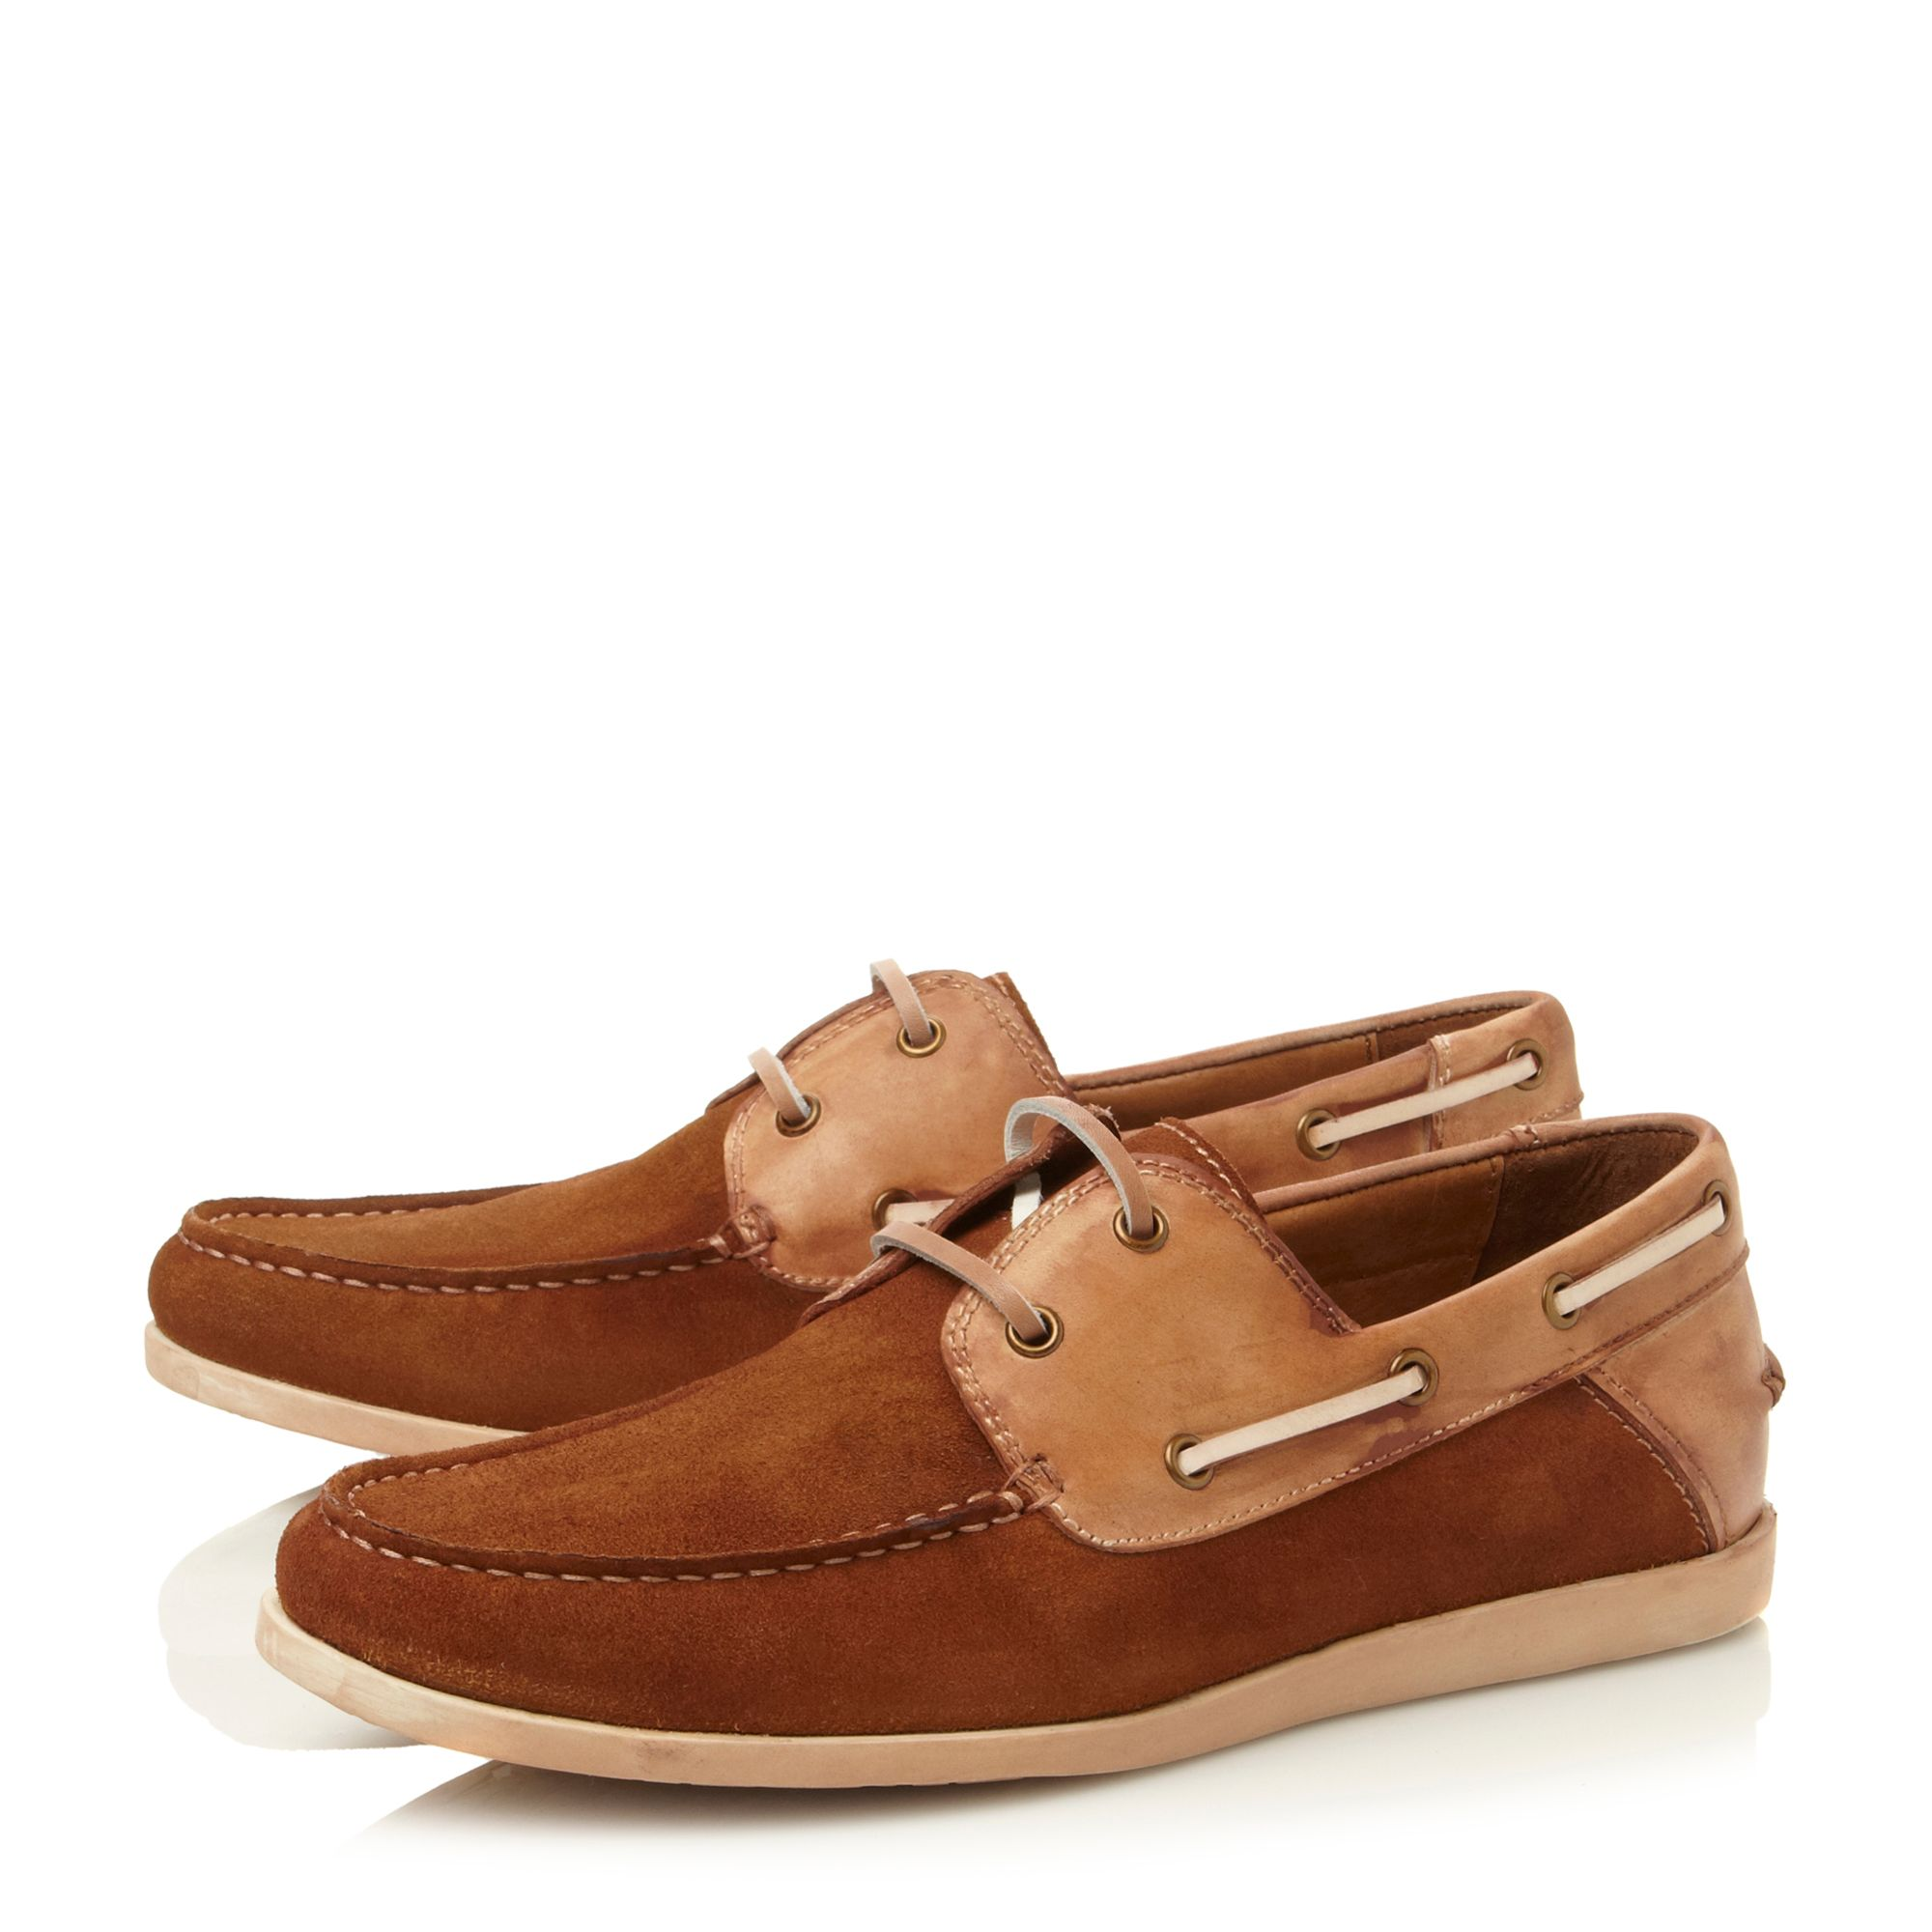 Qnsboro lace up combo boat shoes